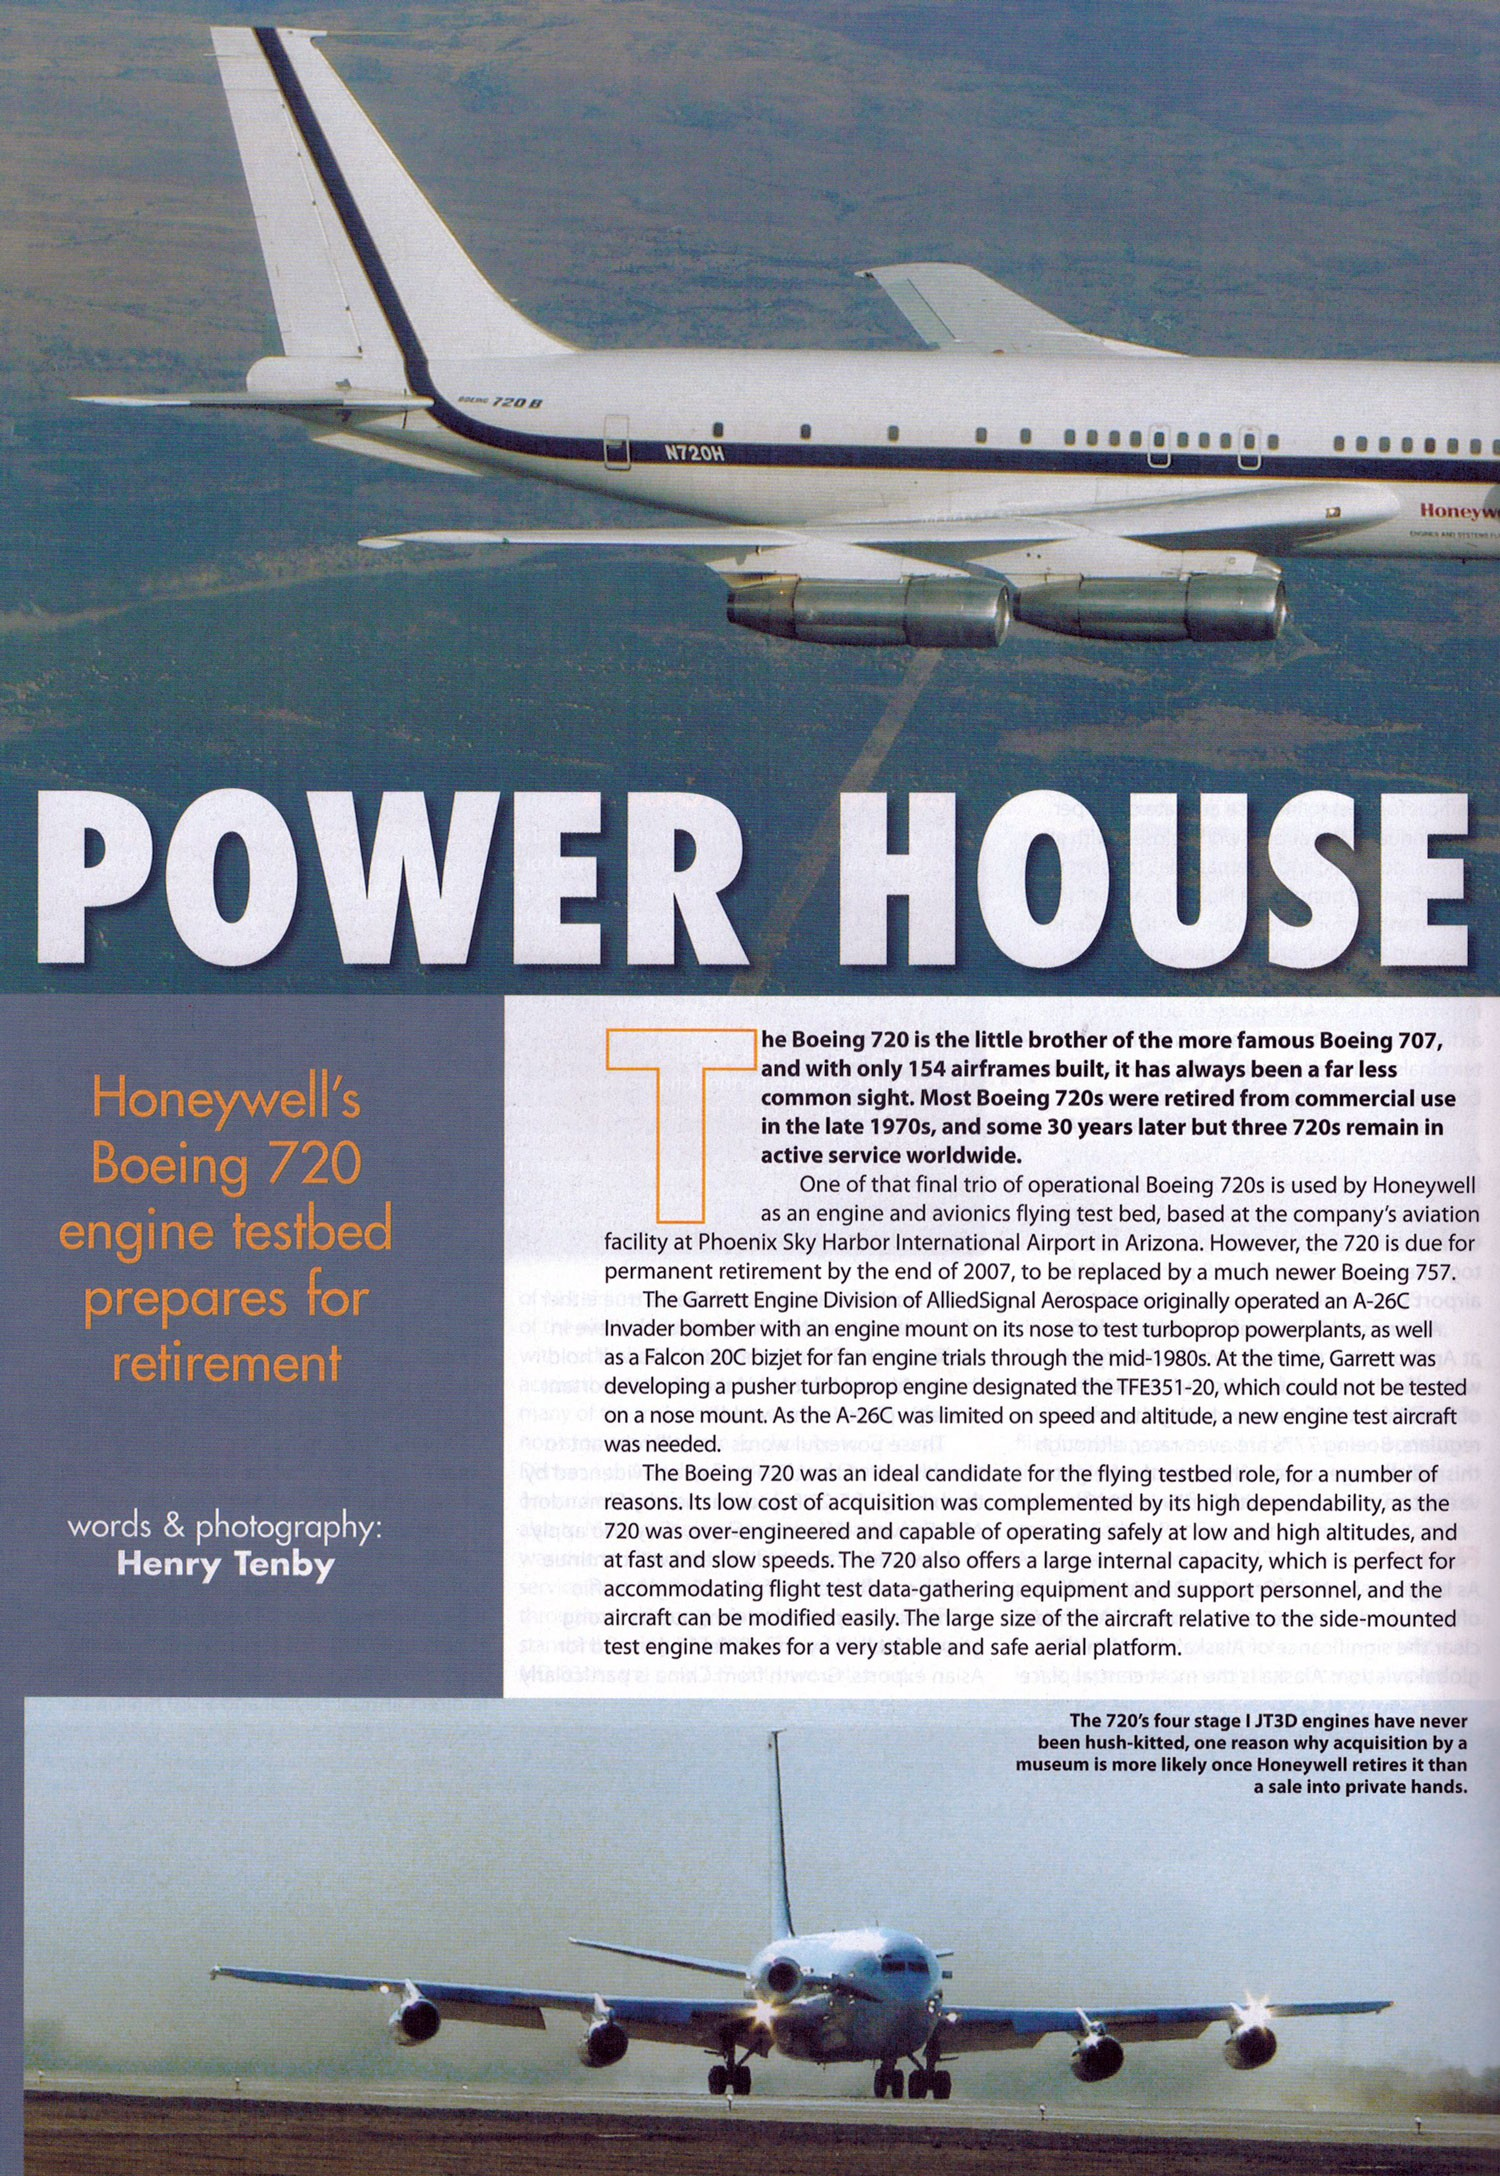 Power House Honeywell's 720 prepares for retirement by Henry Tenby